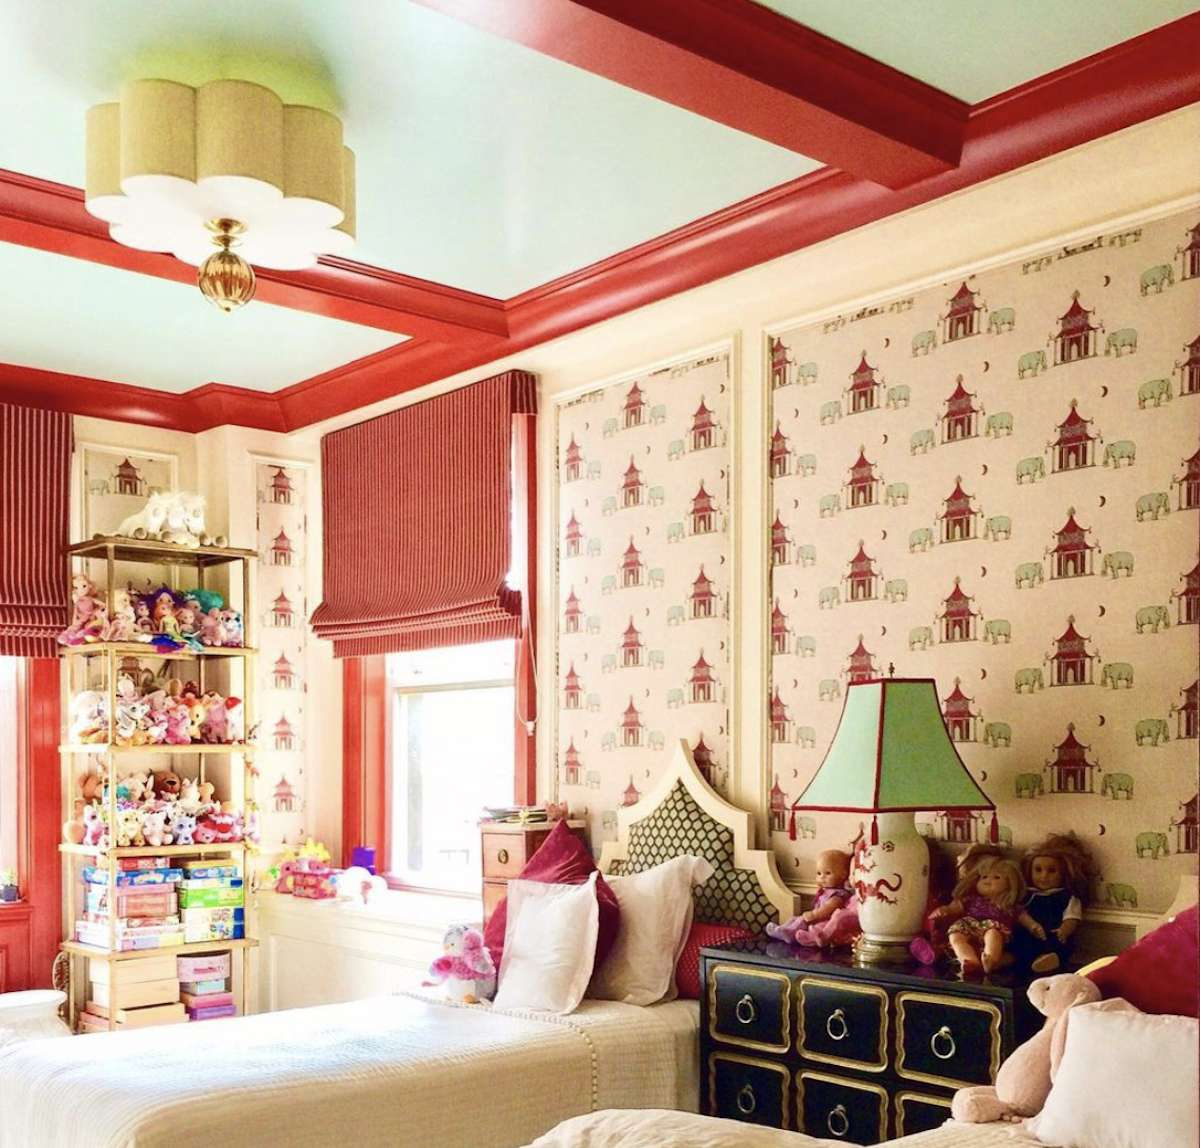 child's bedroom with red houses on wallpaper, exposed red beams on ceiling